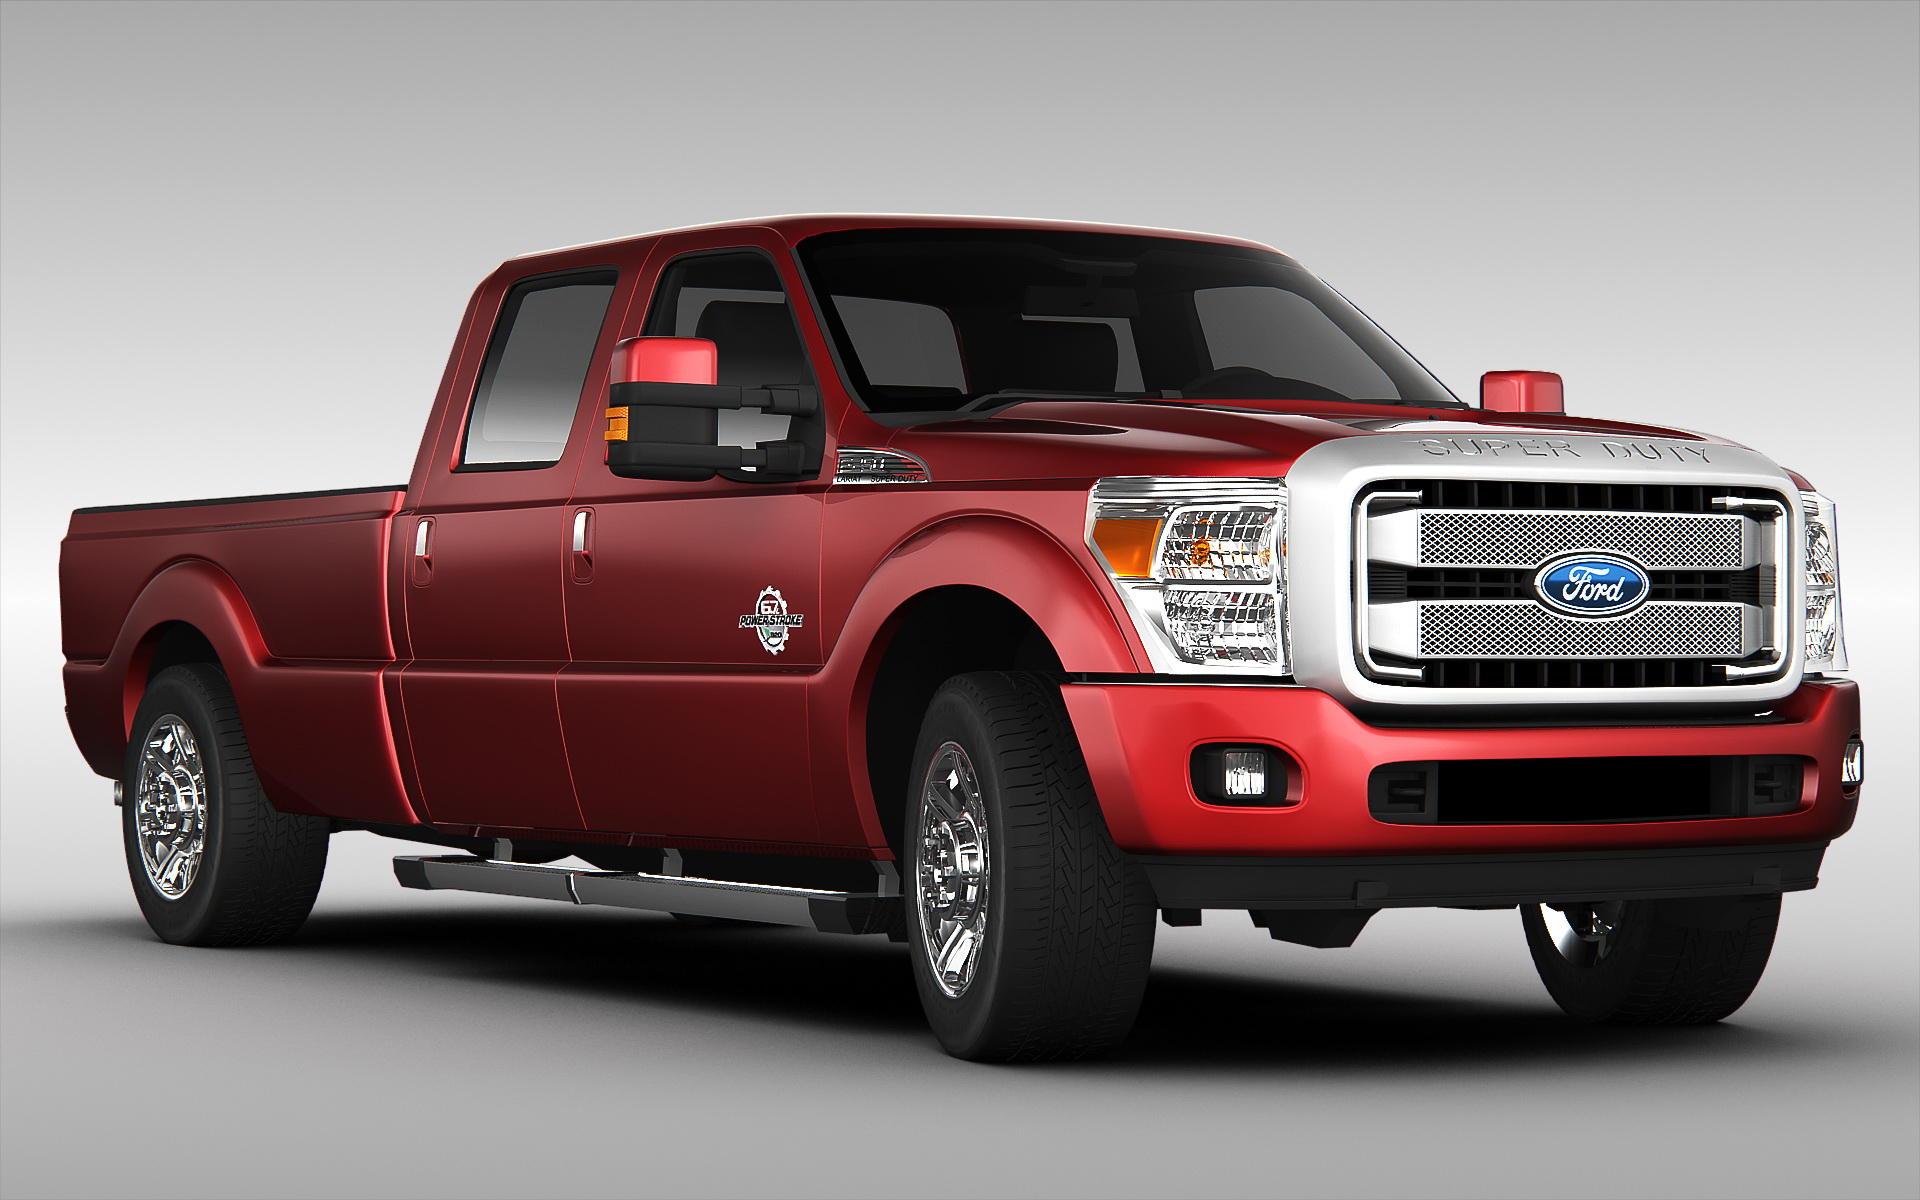 New 2017 Ford Super Duty F-350 DRW Prices - NADAguides |New Model Super Duty